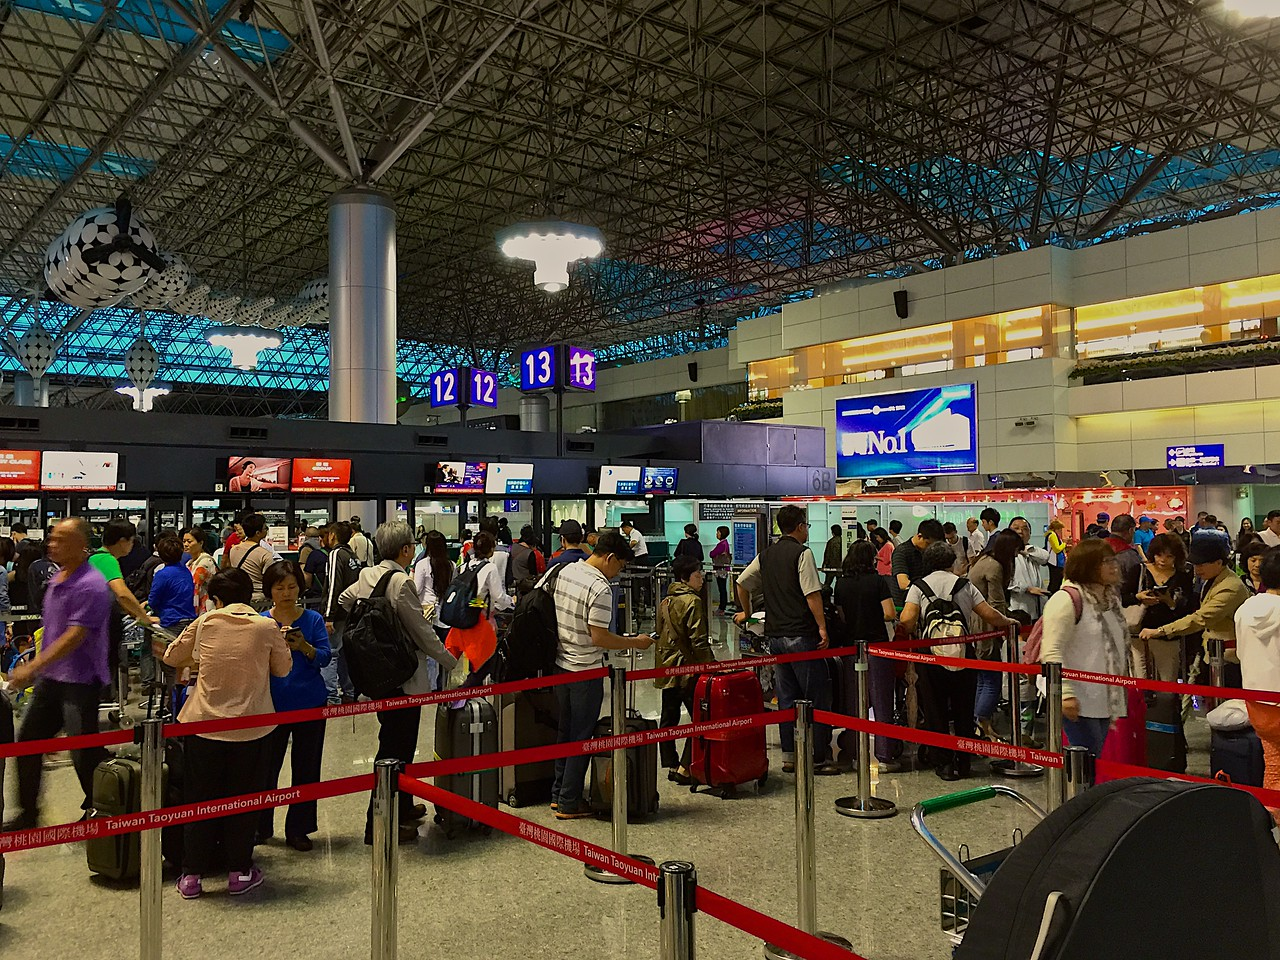 Taiwan Taoyuan was the 11th busiest airport worldwide in terms of international passengers number and 5th busiest in international freight traffic in 2014.